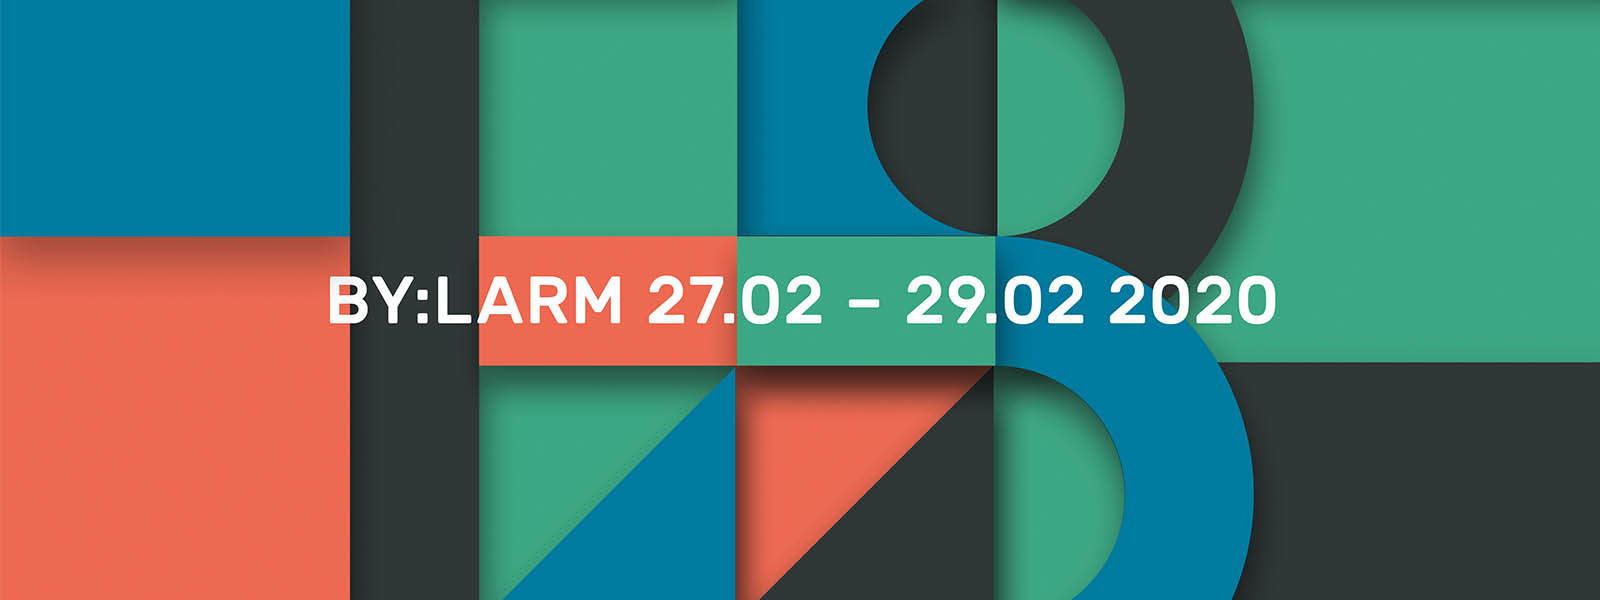 The Orchard Takes by:Larm 2020